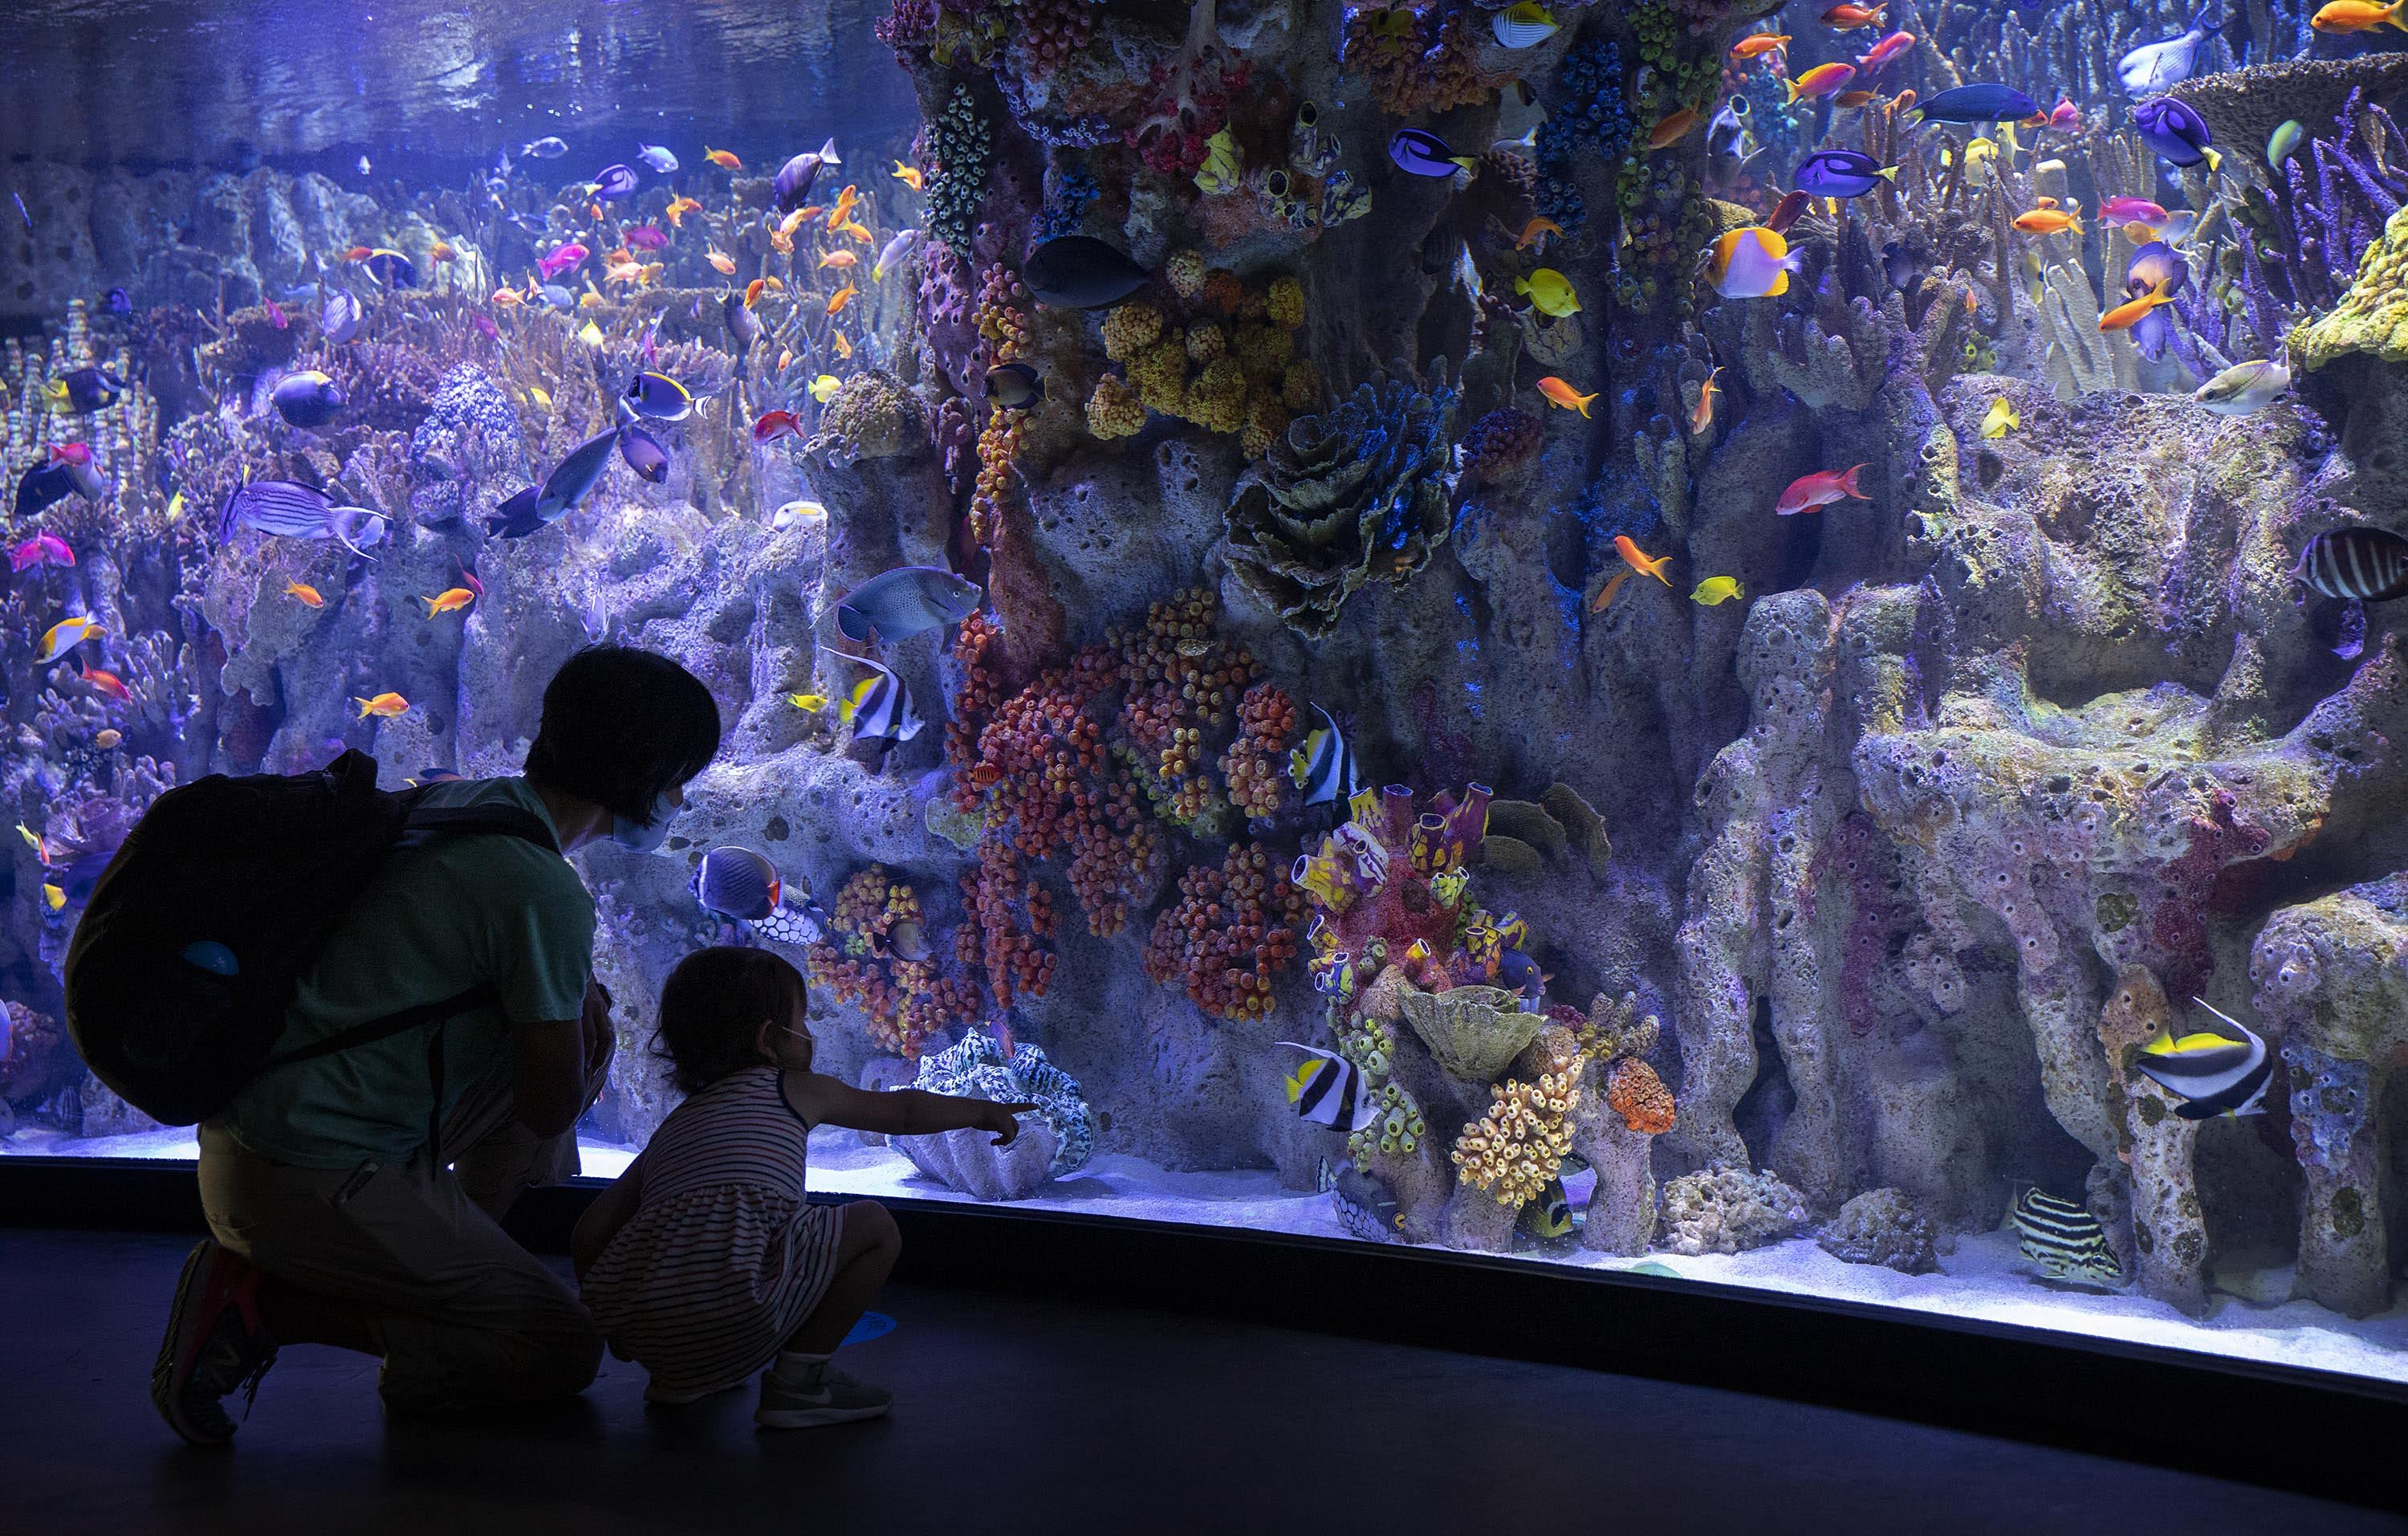 As the New England Aquarium opens for the first time since March, visitors, wearing masks and following social distancing instructions, look at fish in a tropical fish tank. (Robin Lubbock/WBUR)